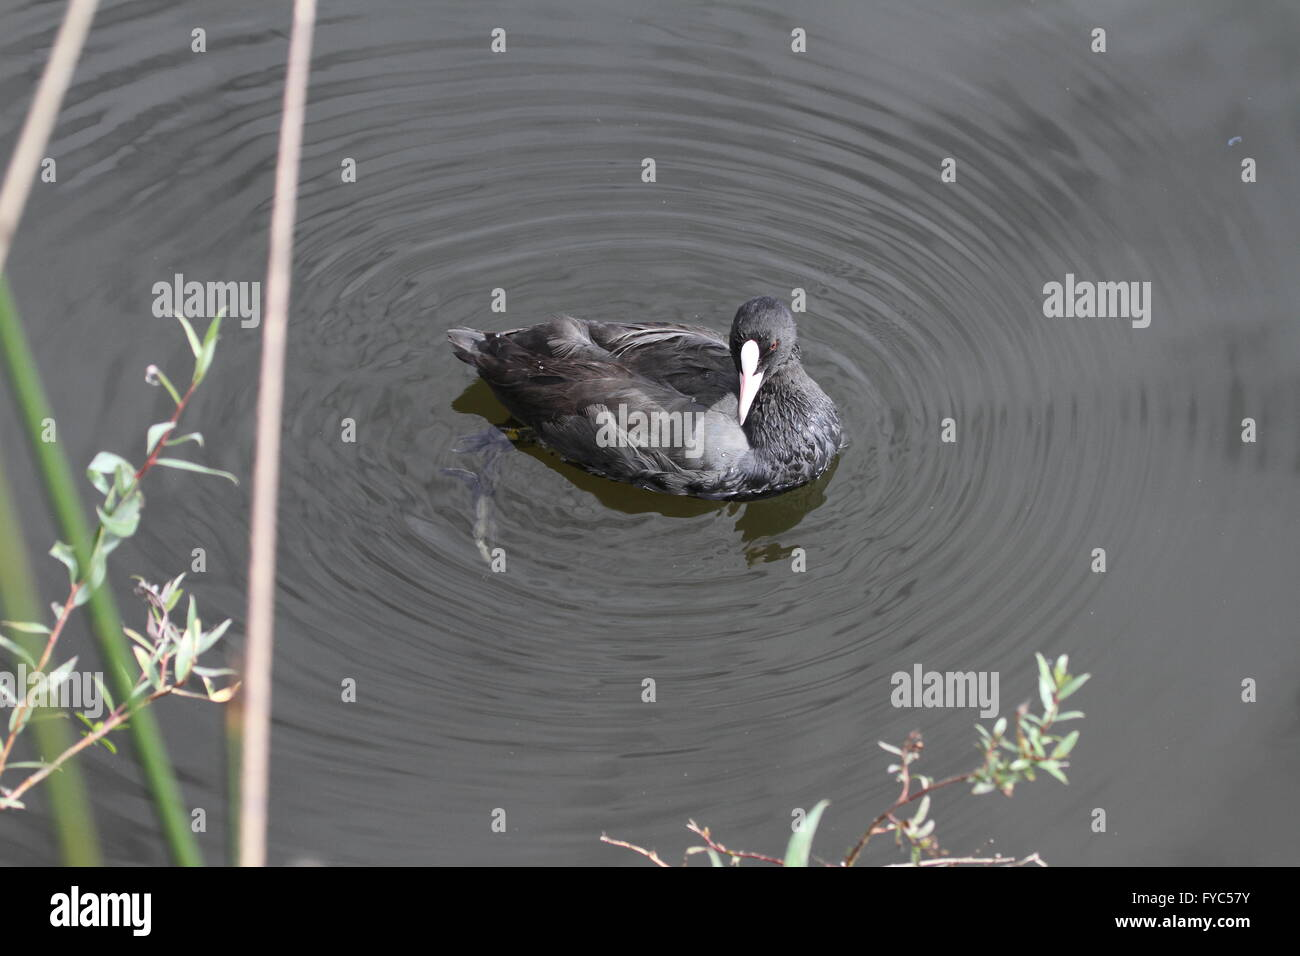 coot fulica atra swimming in the marshes in Colfiorito Umbria Italy folaga - Stock Image